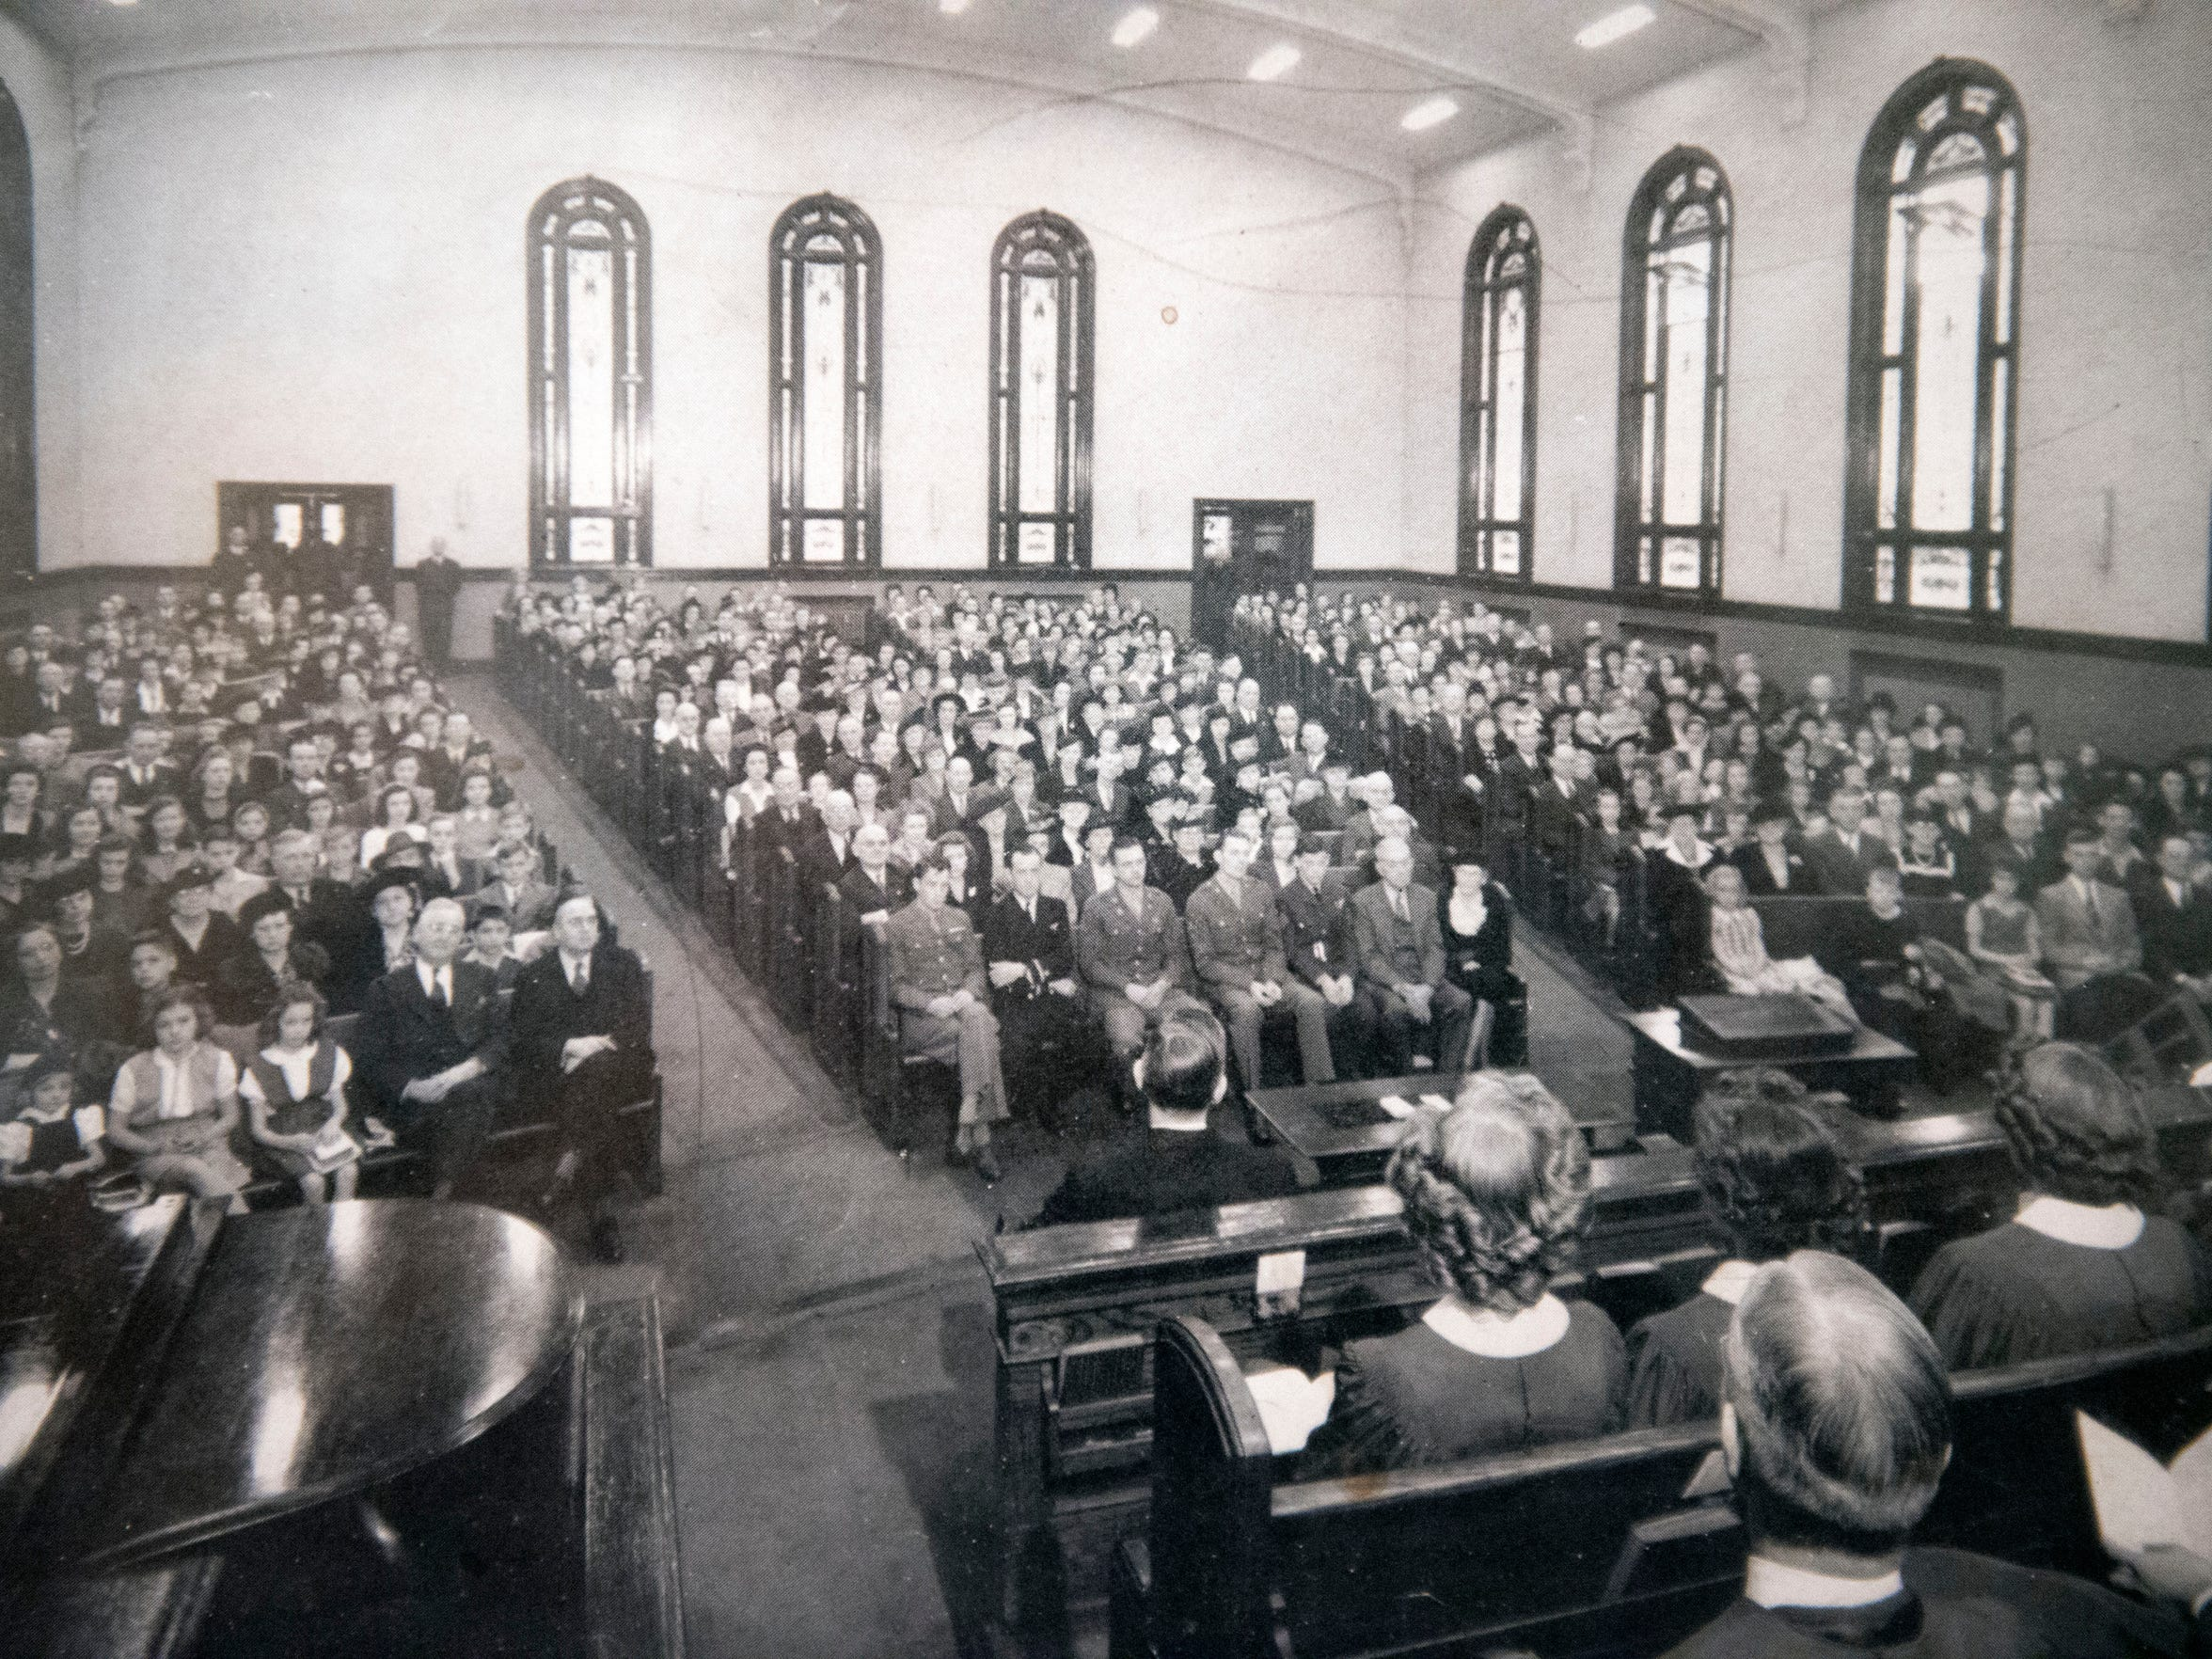 Undated photo of a filled worship hall at Fifth Ave. Baptist Church.